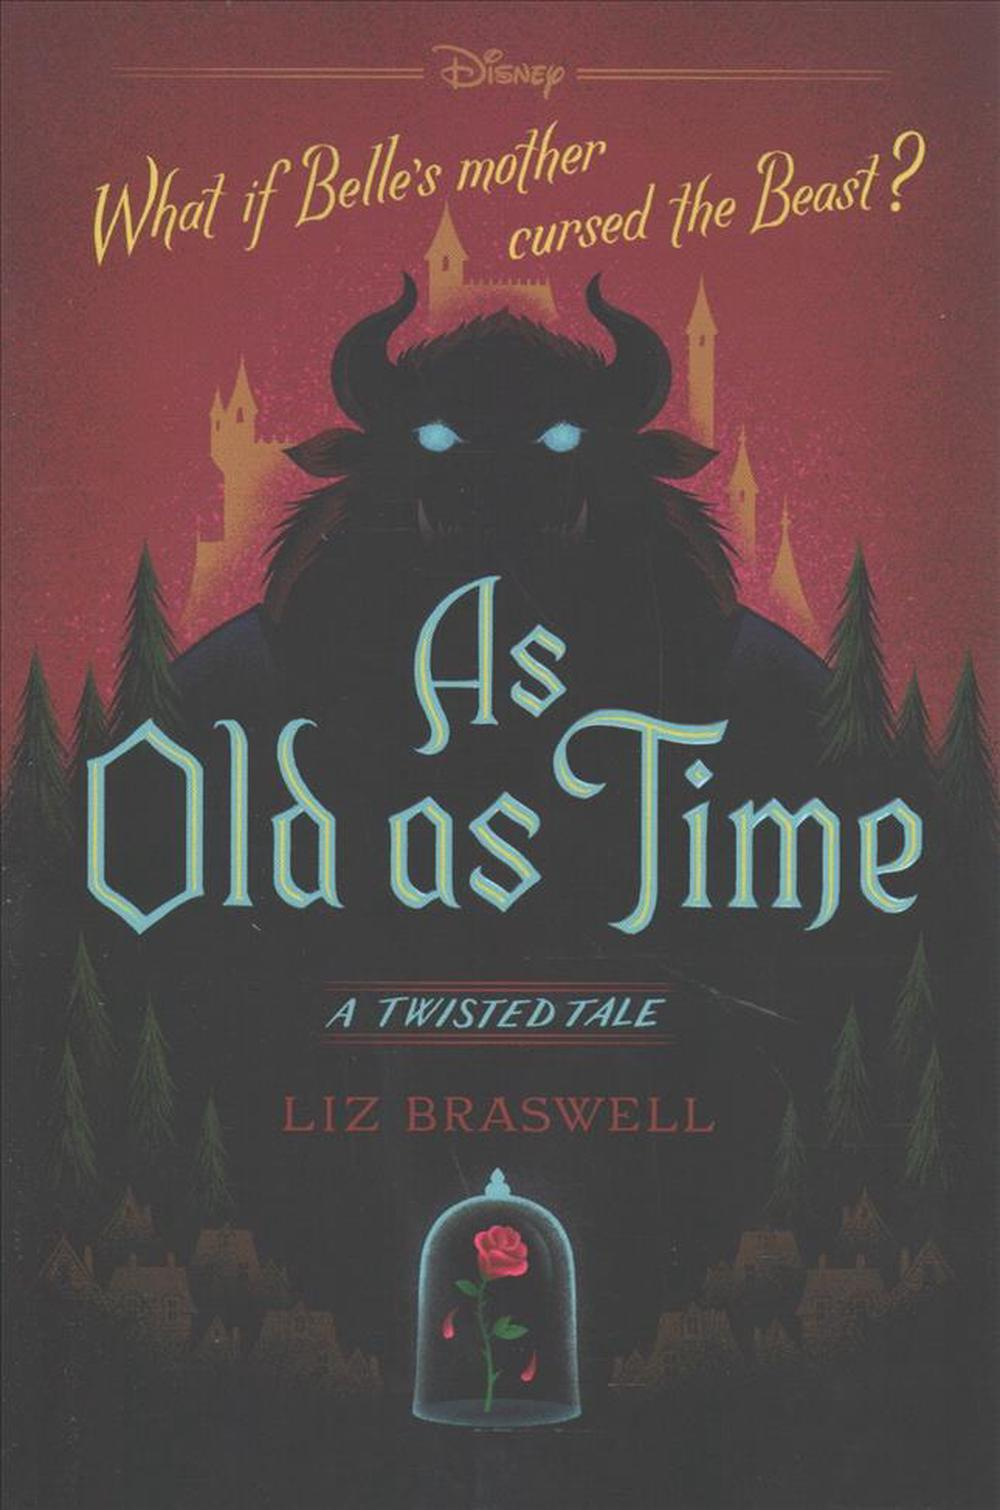 As Old as Time: A Twisted Tale by Liz Braswell, ISBN: 9781484707319